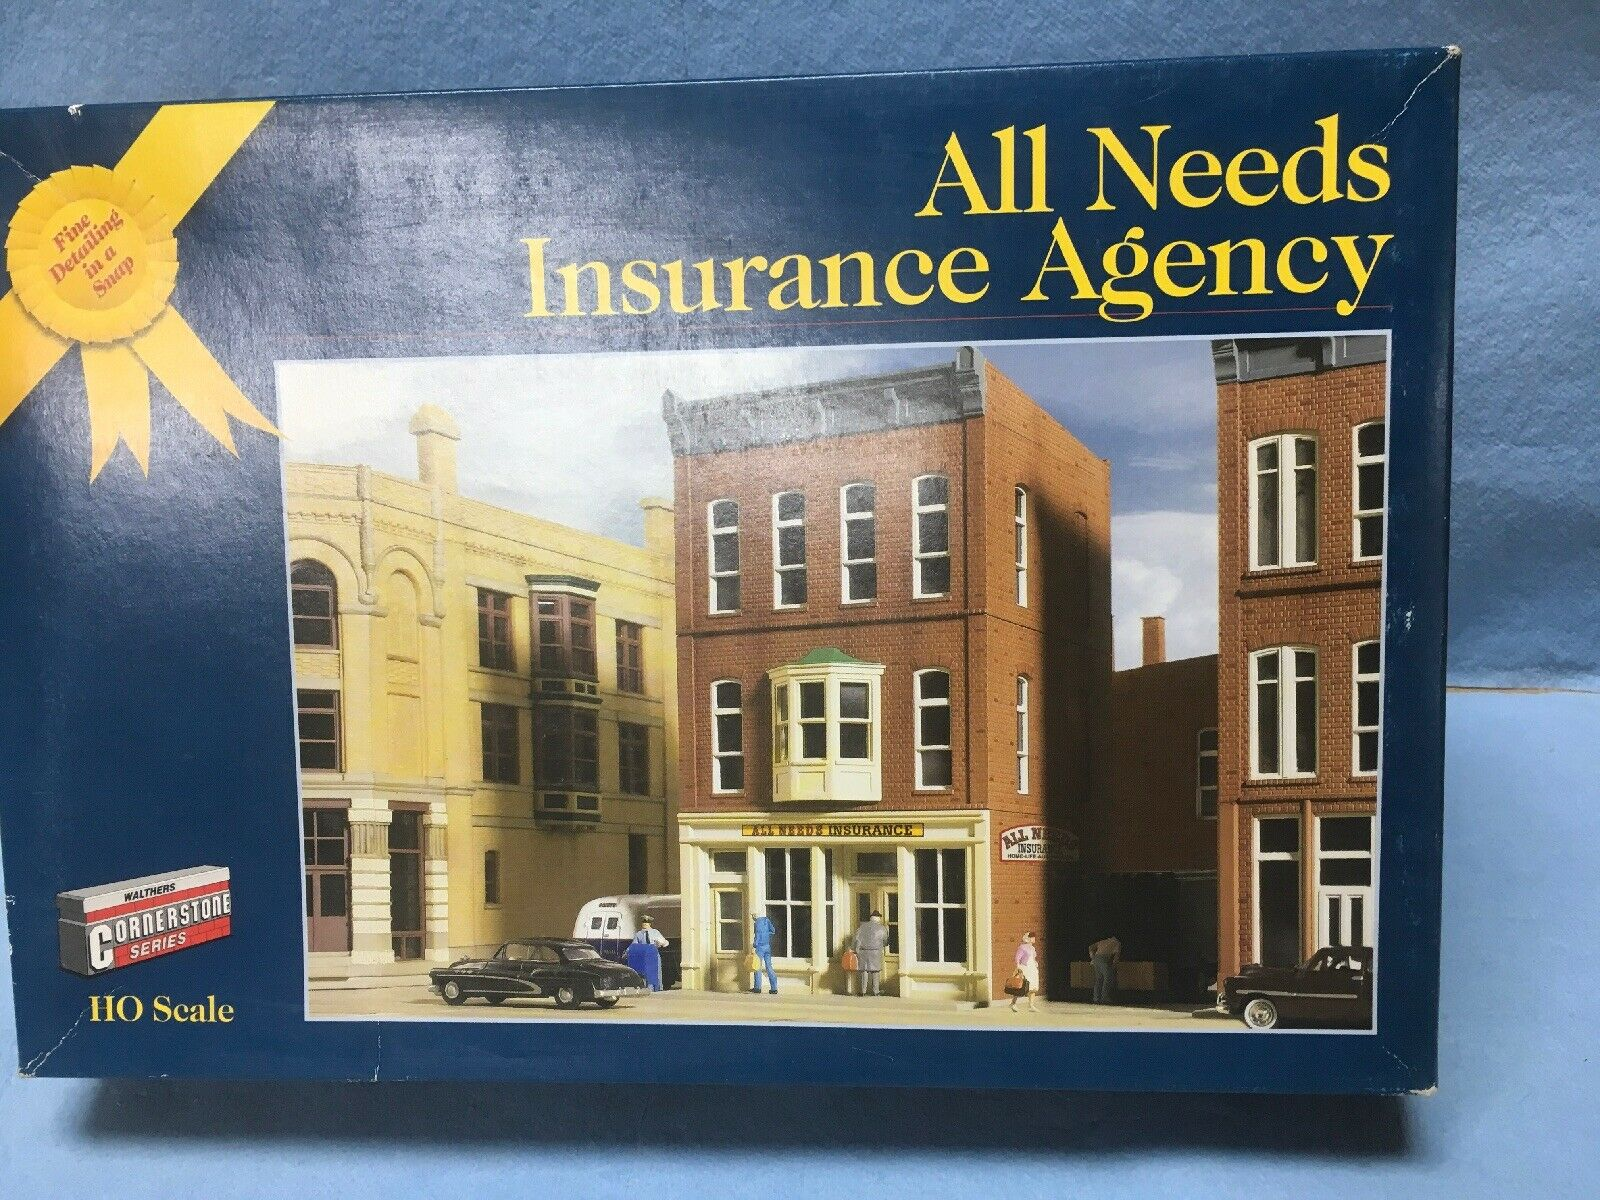 WALTHERS CORNERSTONE gold RIBBON SERIES ALL NEEDS INSURANCE AGENCY HO 933-3617